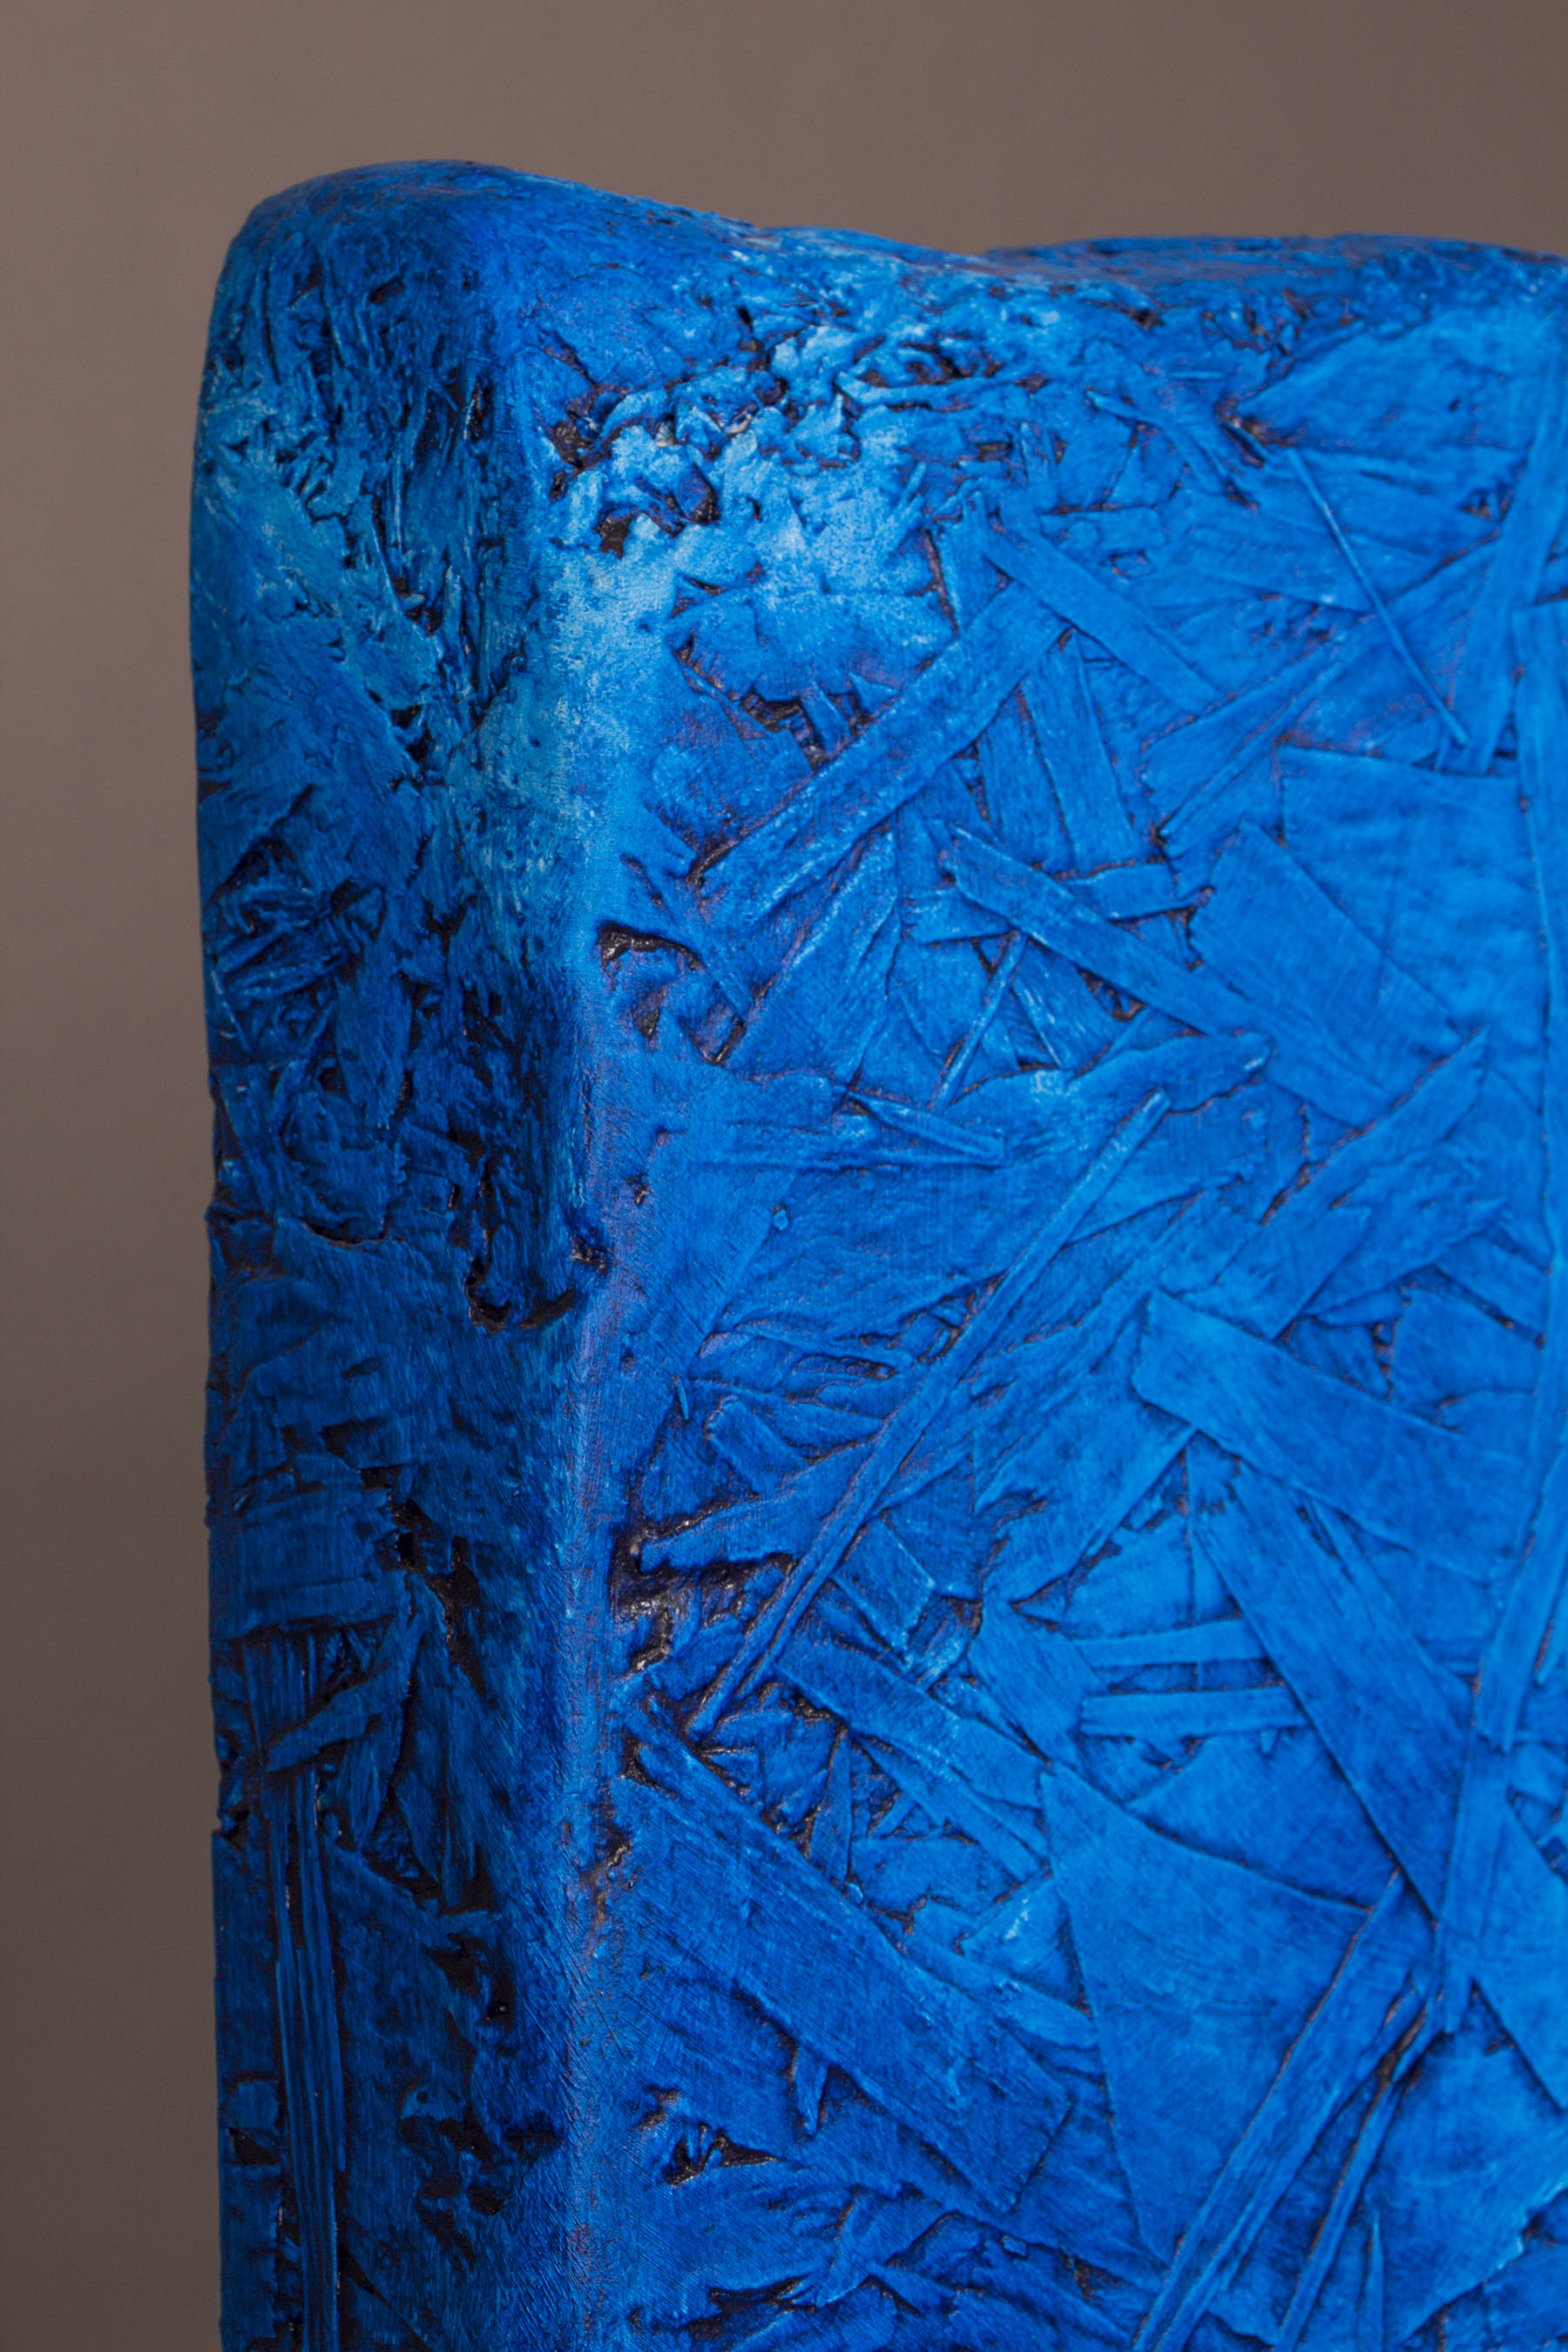 Top corner, side view, blue paint on wood